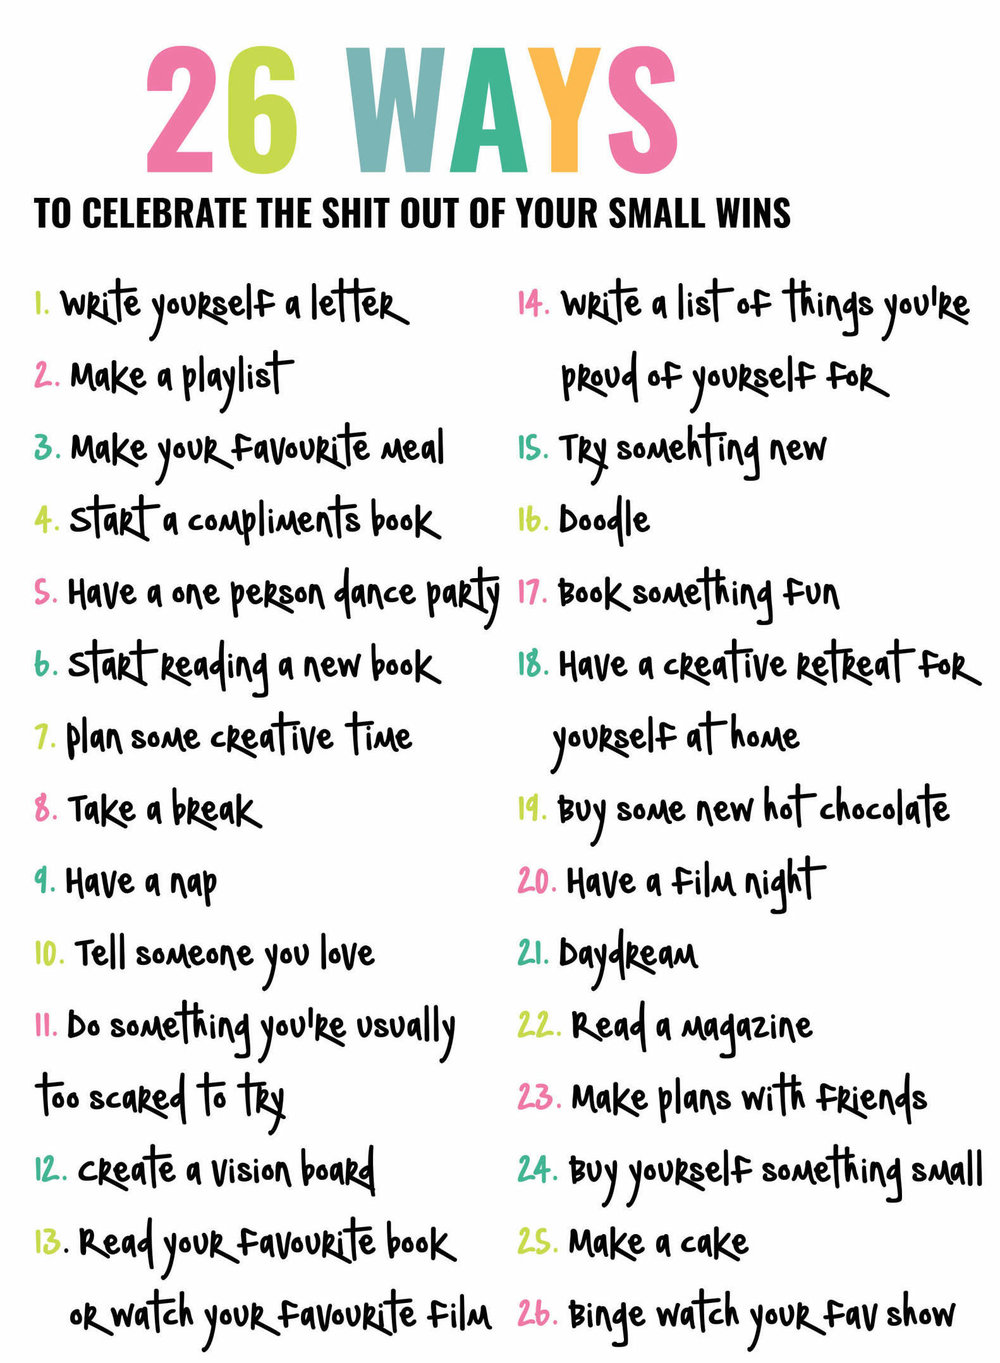 26 Ways To Celebrate The Shit Out Of Your Small Wins - That Hummingbird Life.jpg